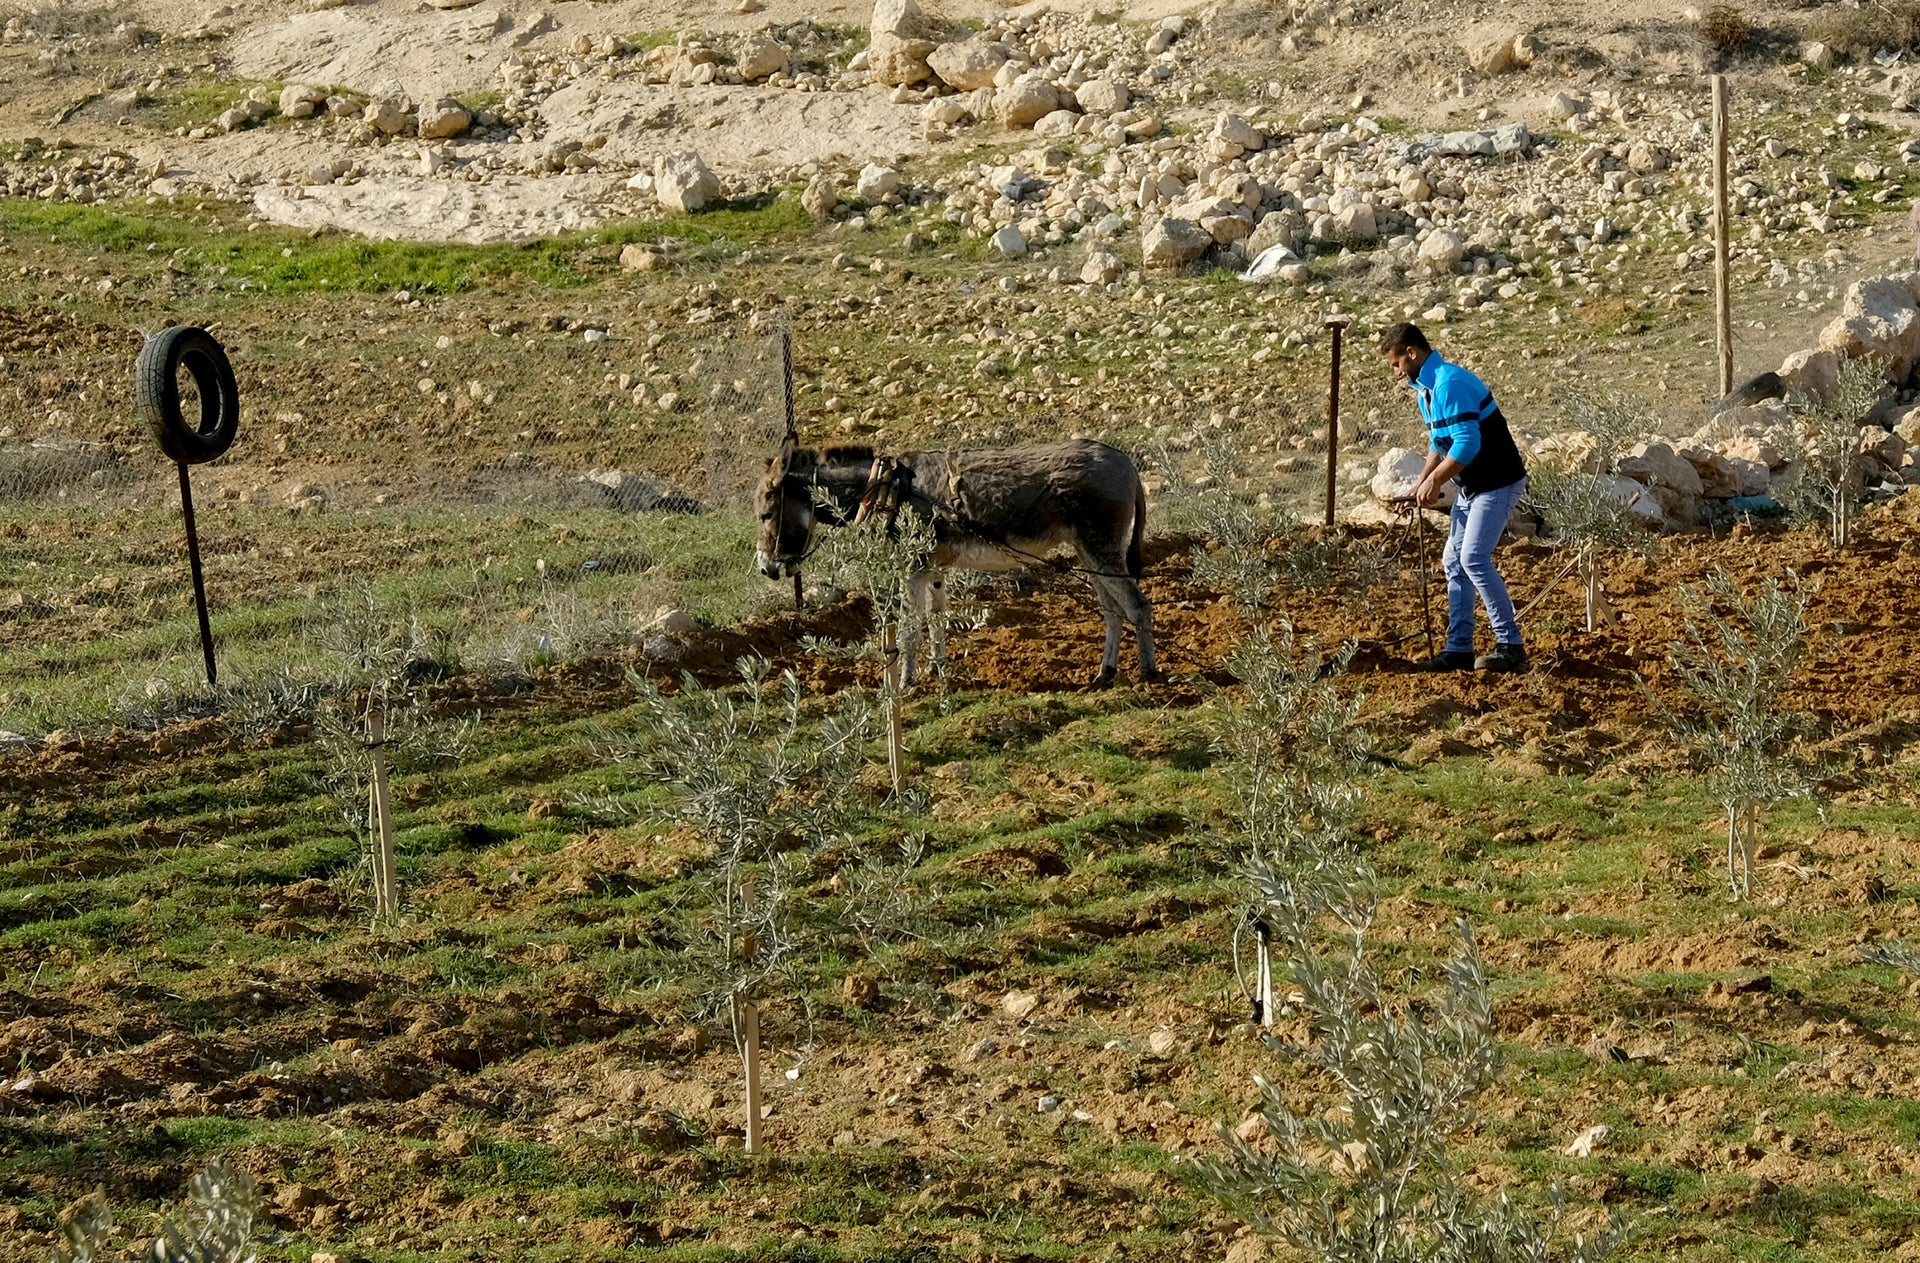 A man plows a field in the Yatta area, in the West Bank.